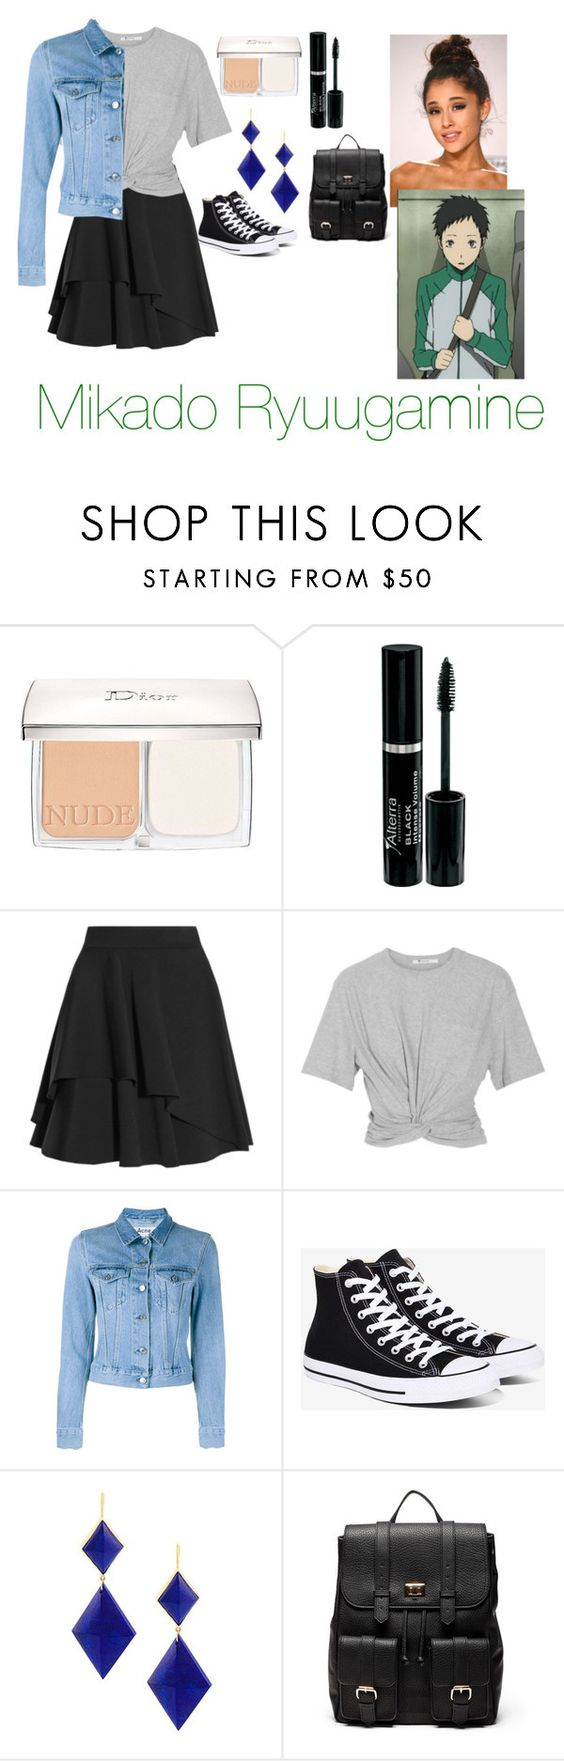 """Mikado Ryuugamine"" by charbear231 ❤ liked on Polyvore featuring Christian Dior, Alexander McQueen, T By Alexander Wang, Acne Studios, Converse, Marie Hélène de Taillac, Sole Society and Forum"